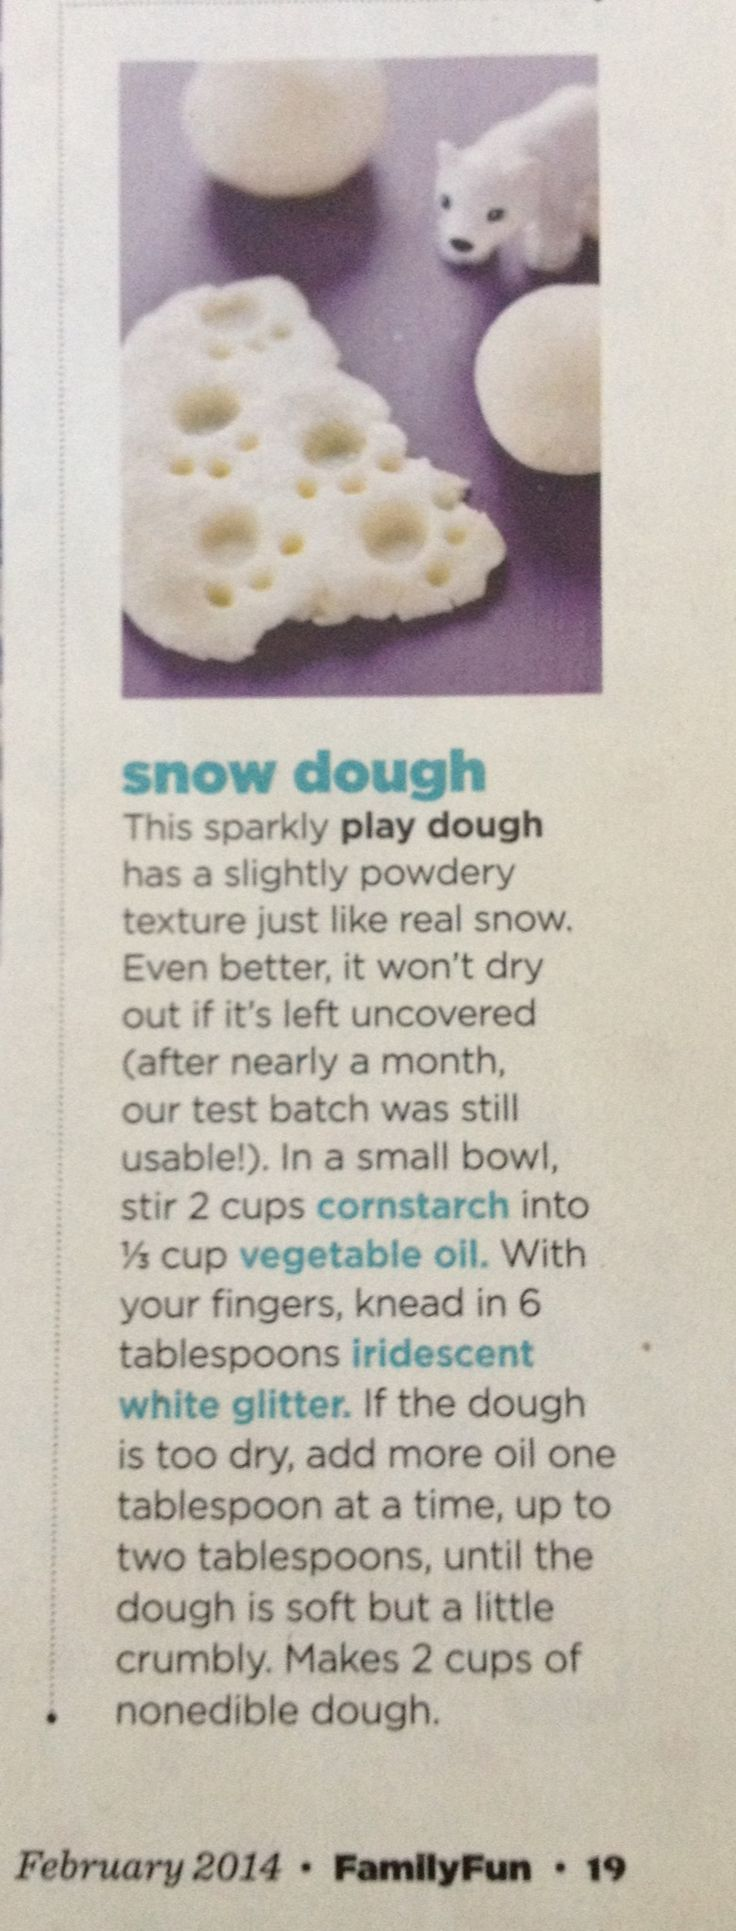 Snow Dough from Family Fun Magazine, February 2014